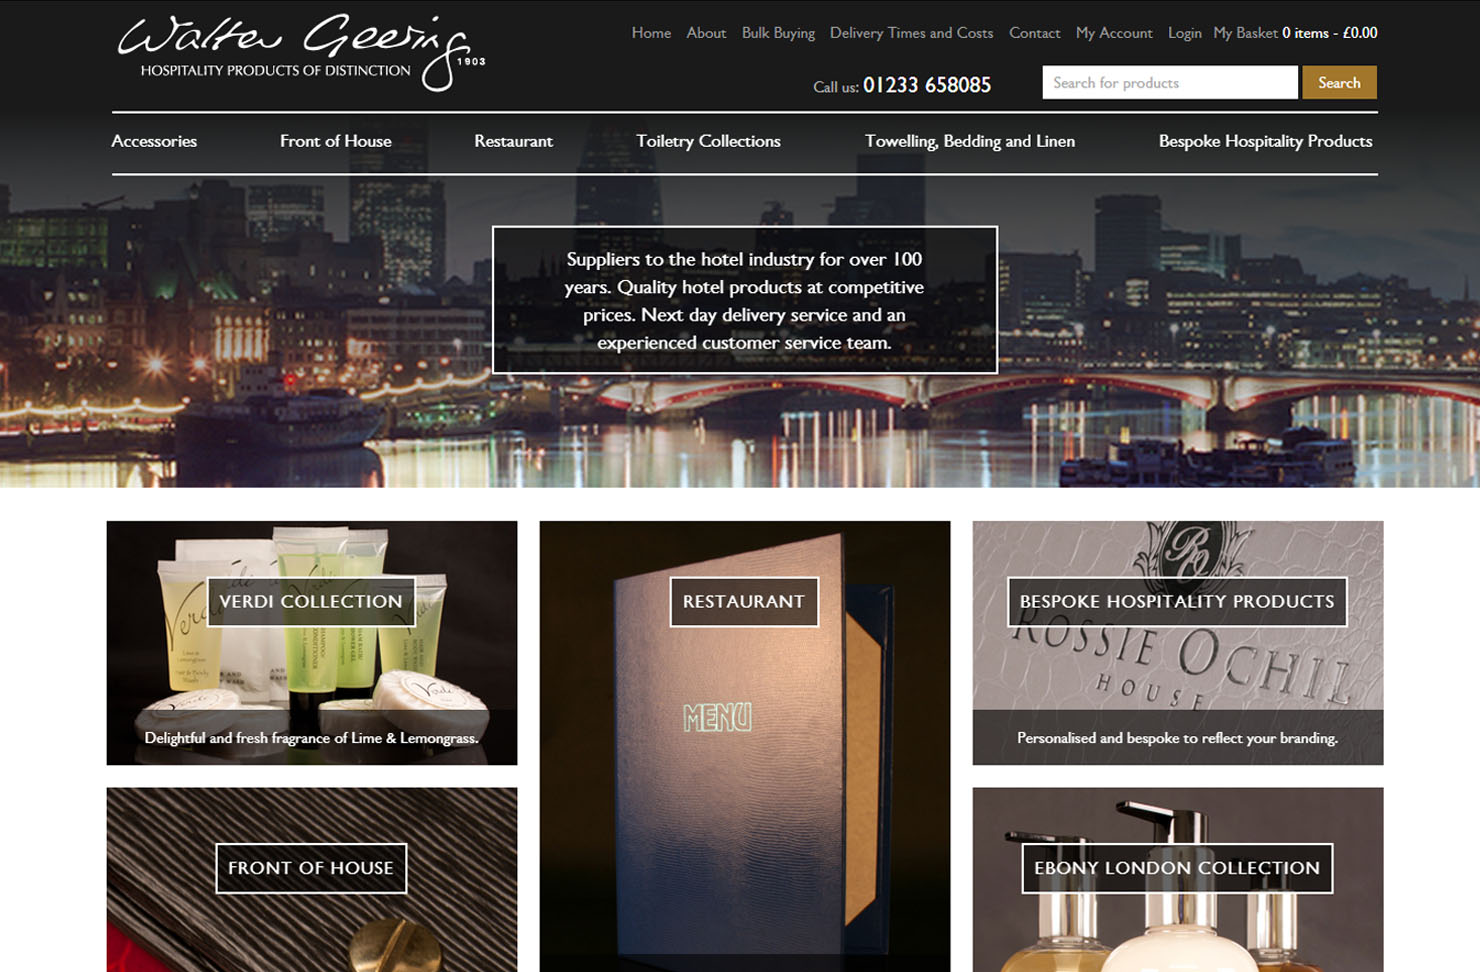 6-2 design web design kent - Geerings Hotels (2)